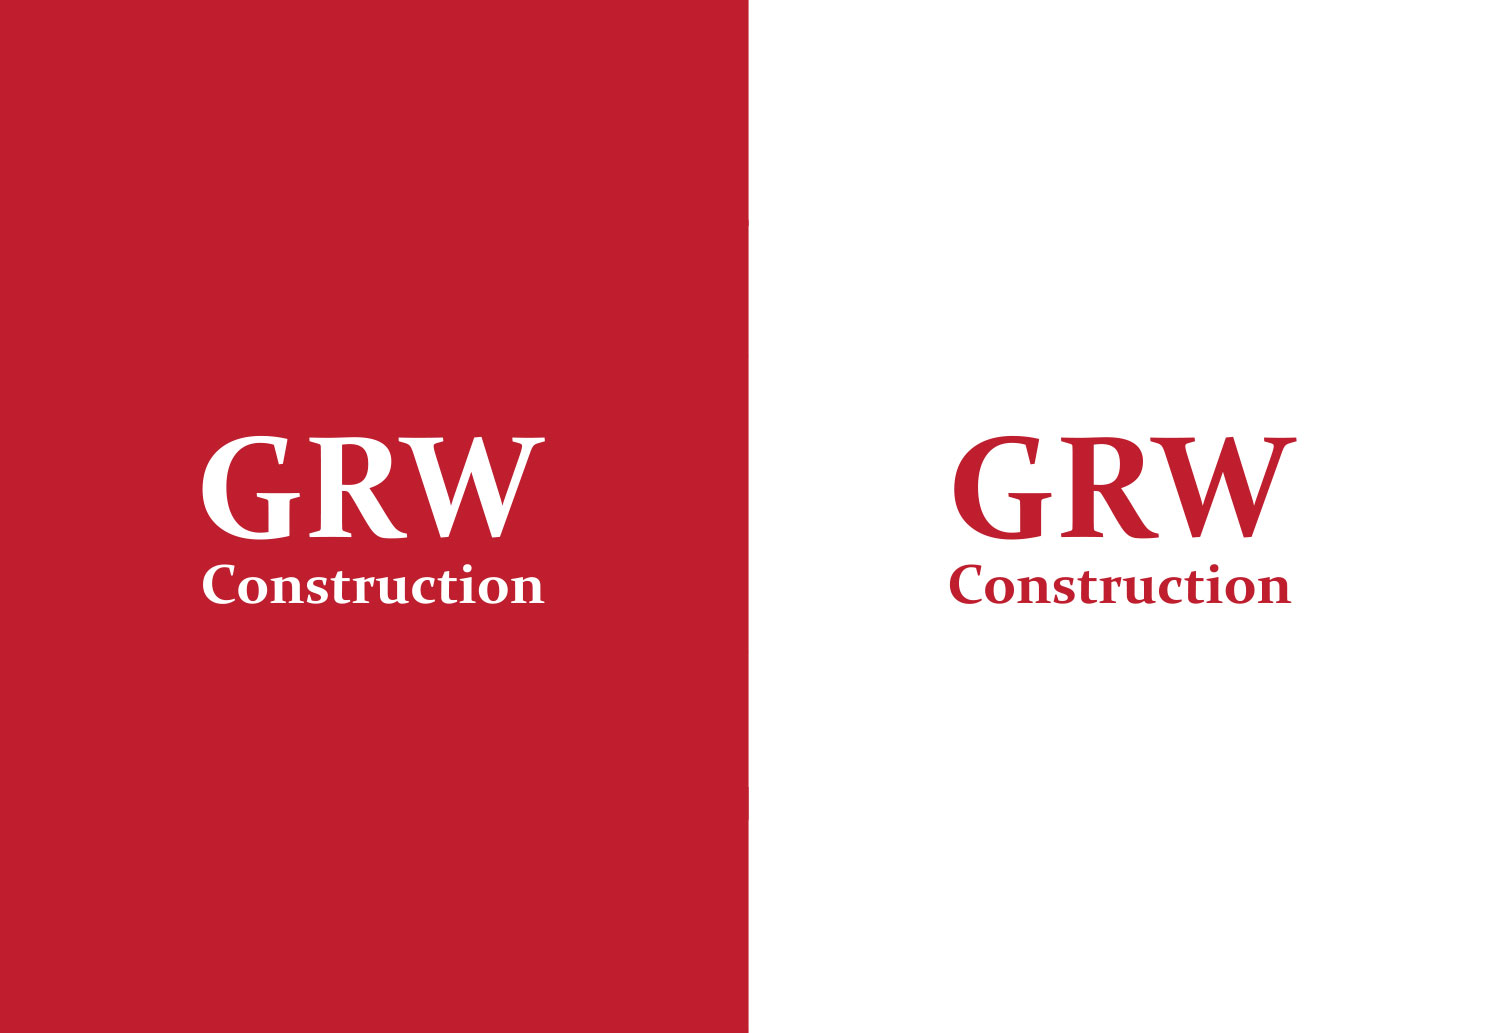 GRW Construction new logo design in colour and white knock out